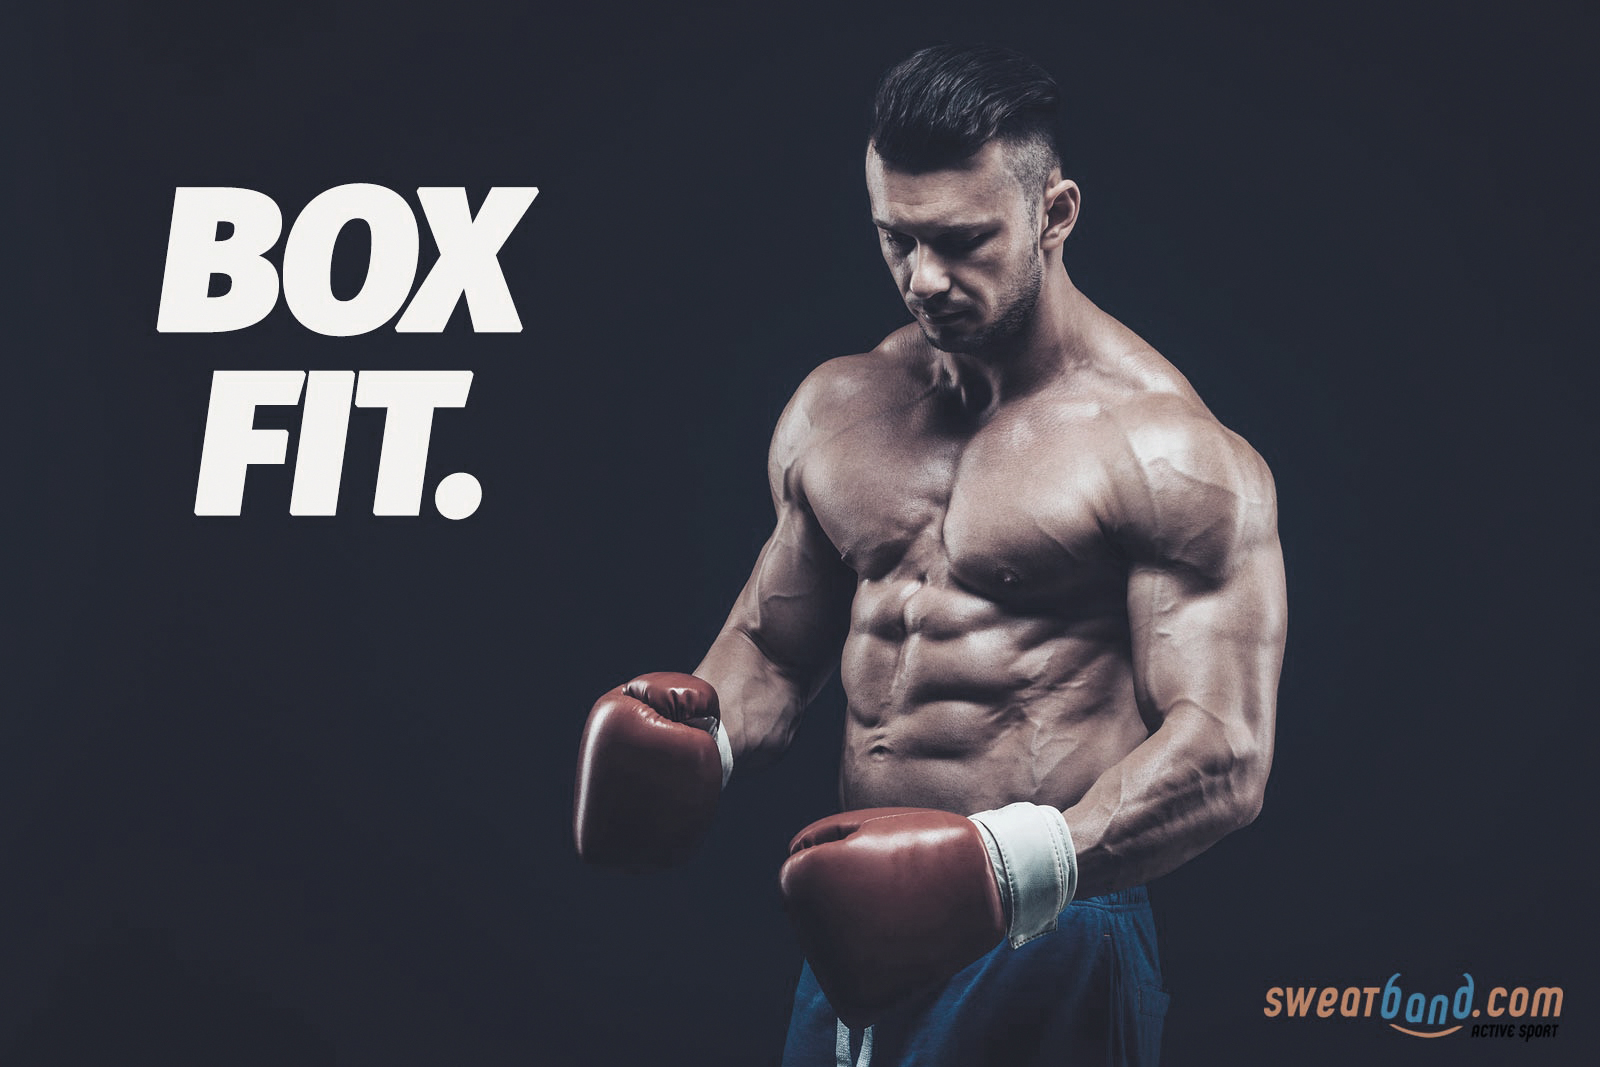 Boxing is an excellent body-building tool